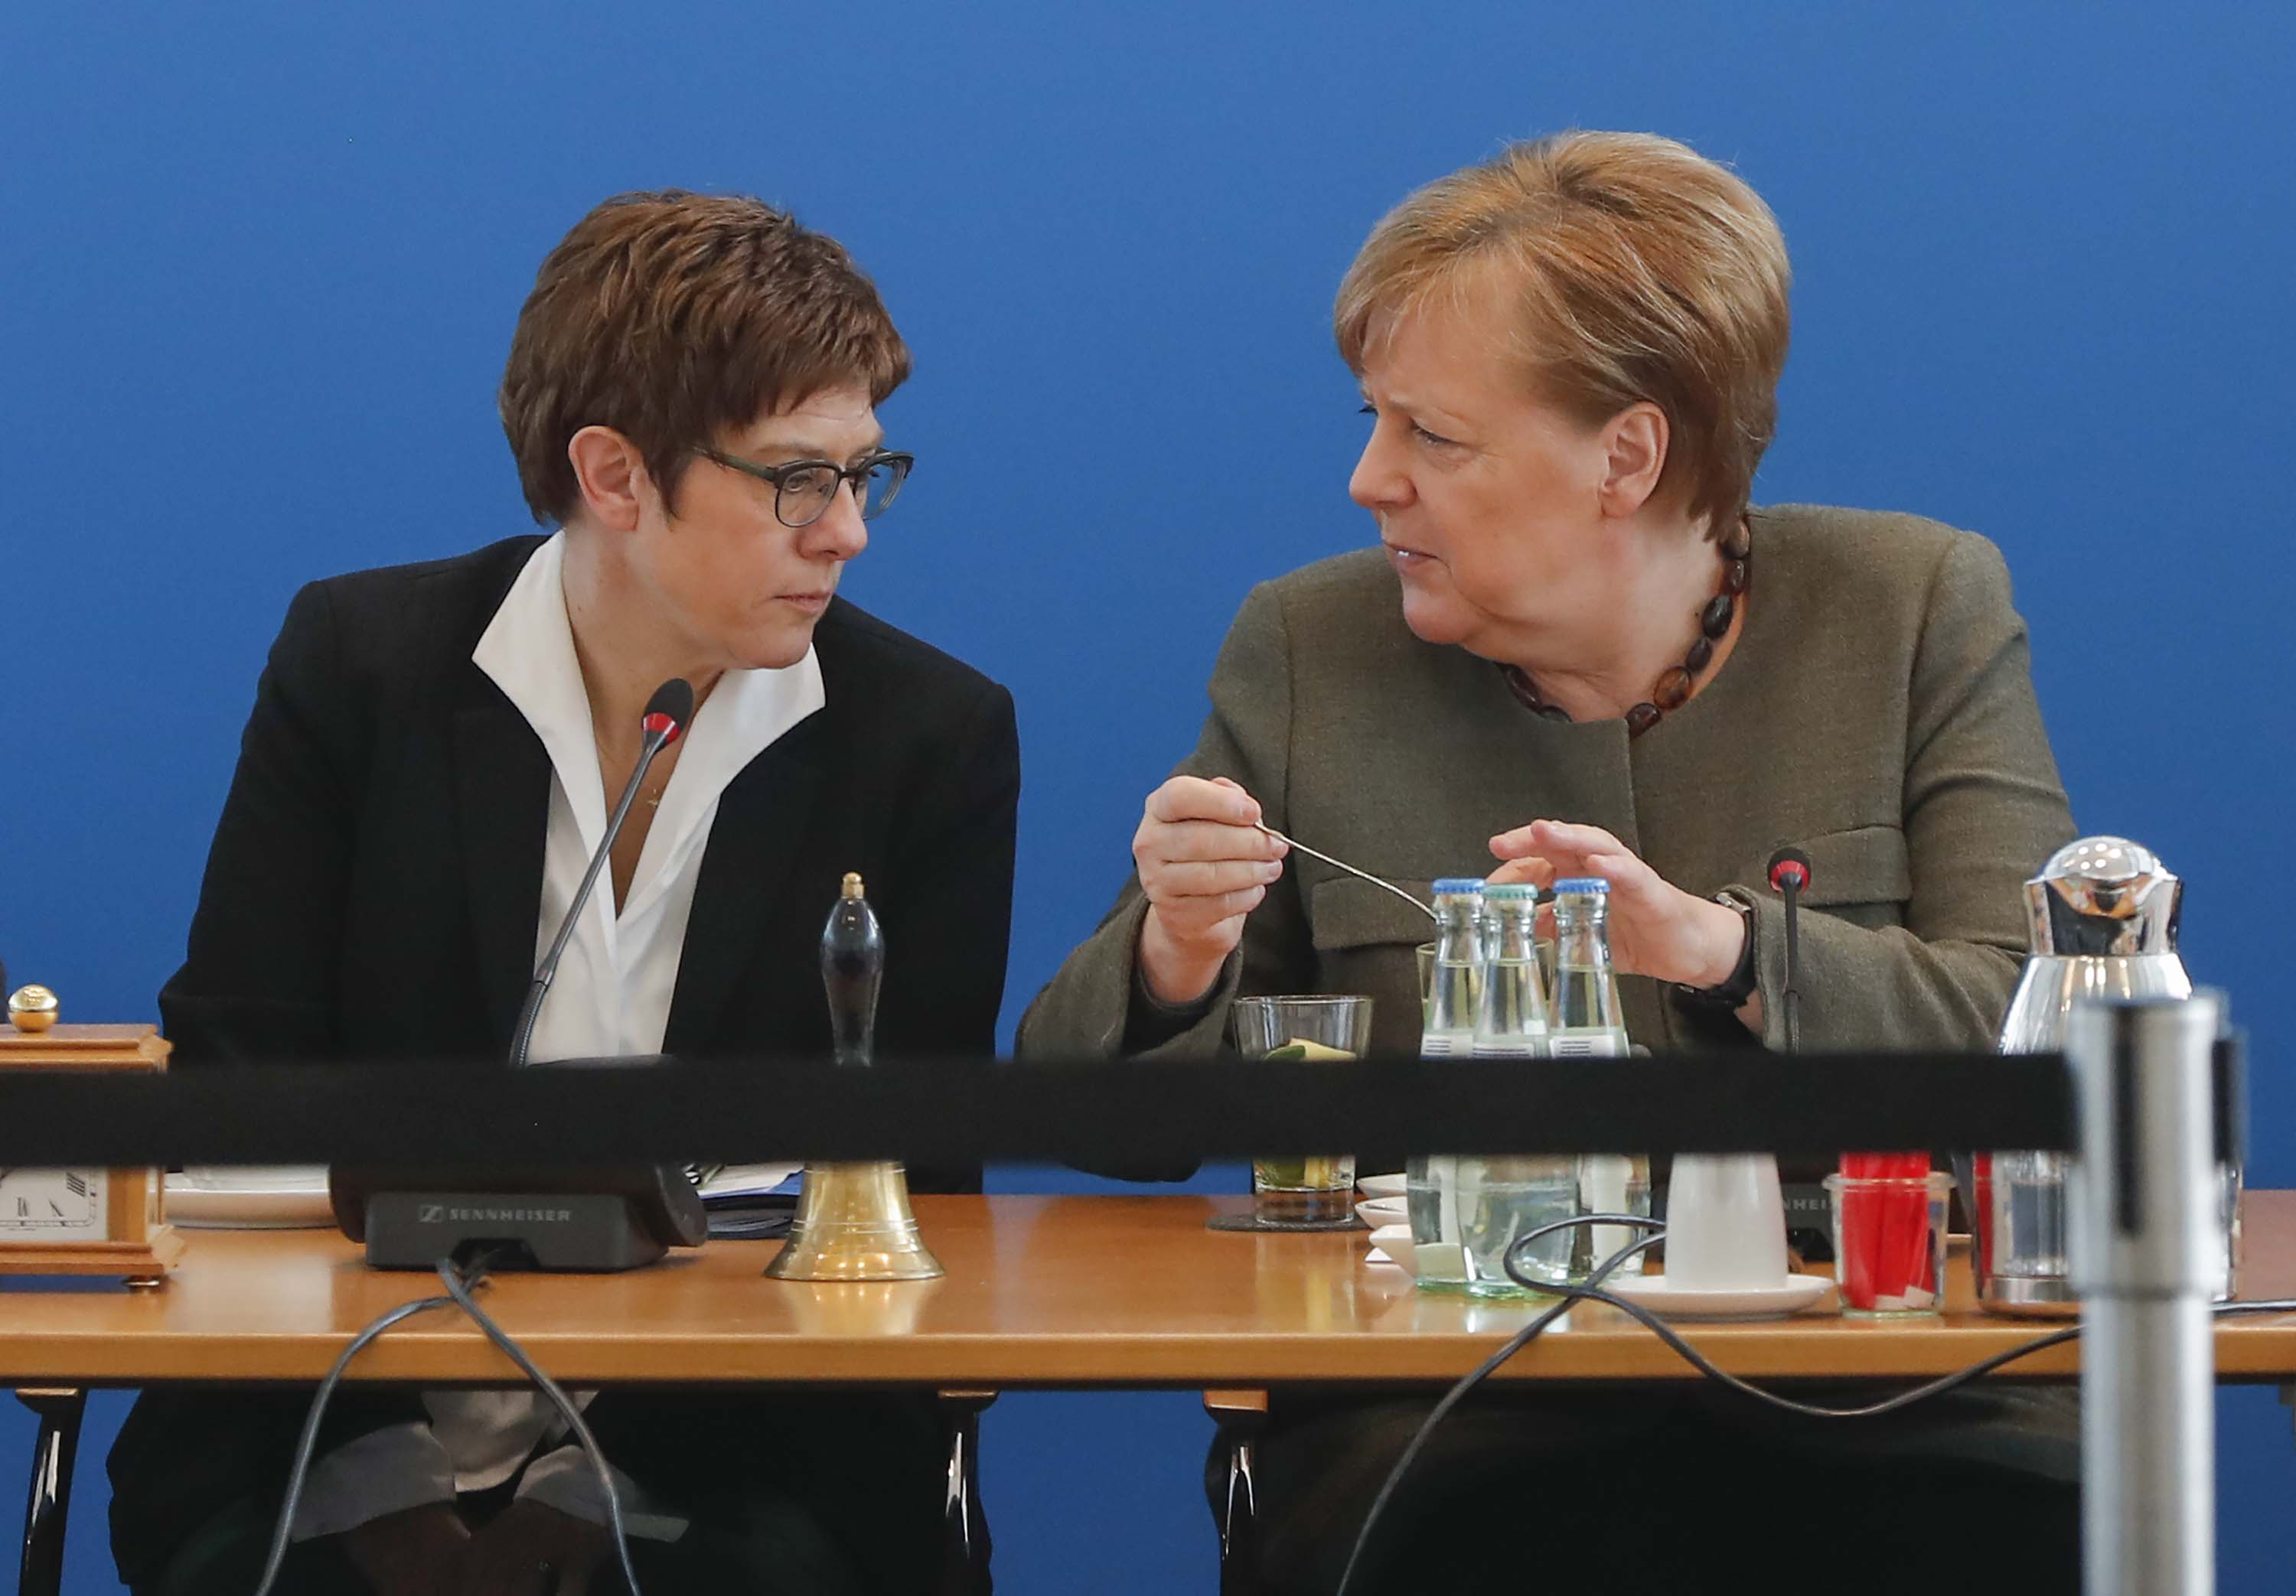 The leader of the Christian Democratic Union (CDU) Annegret Kramp-Karrenbauer, left, speaks with German Chancellor Angela Merkel, prior to a party leadership meeting on February 24, in Berlin, Germany.